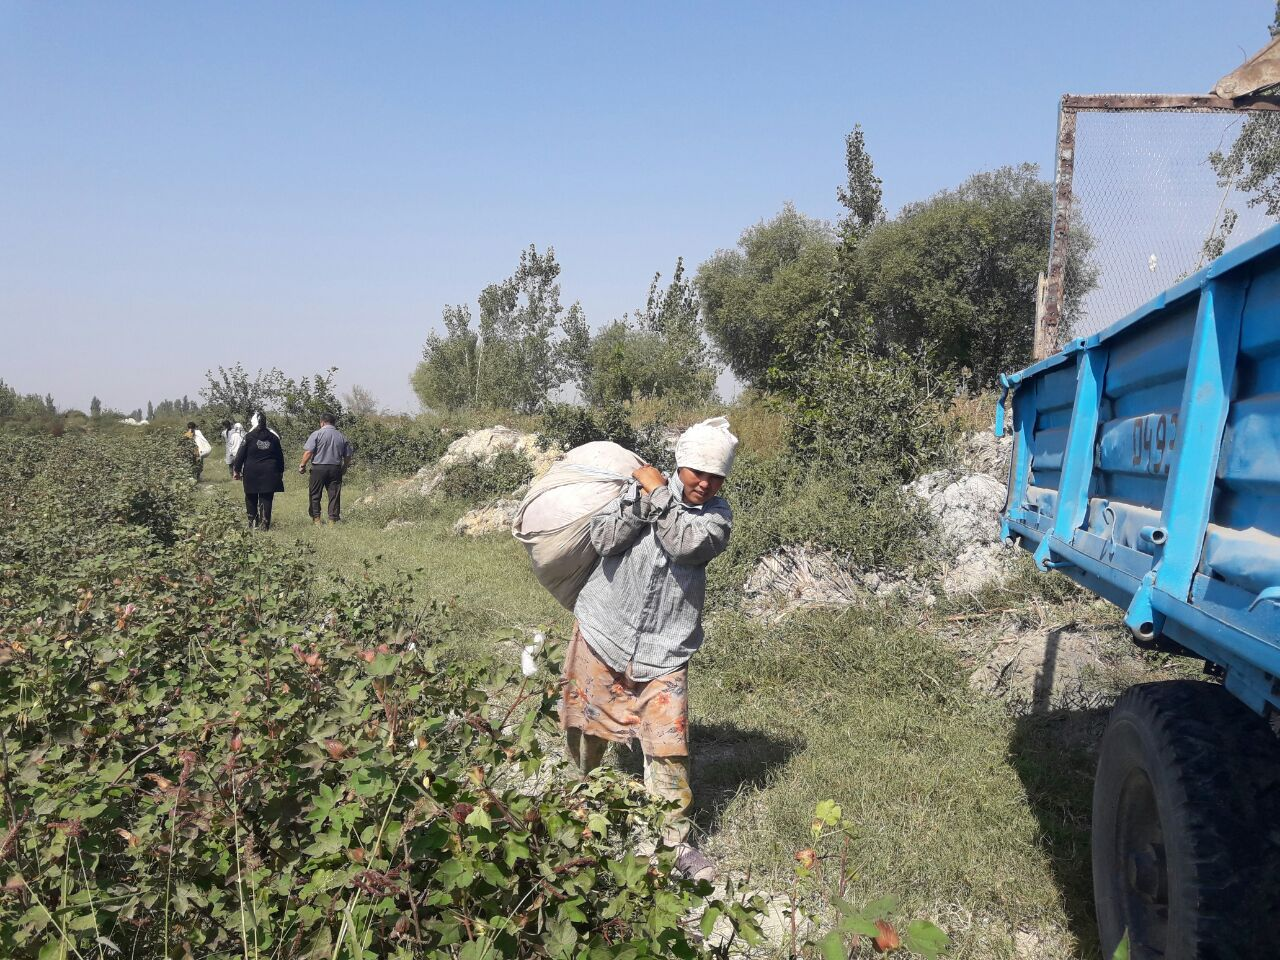 Forced Labor in Uzbekistan—Time to Turn Rhetoric Into Practice